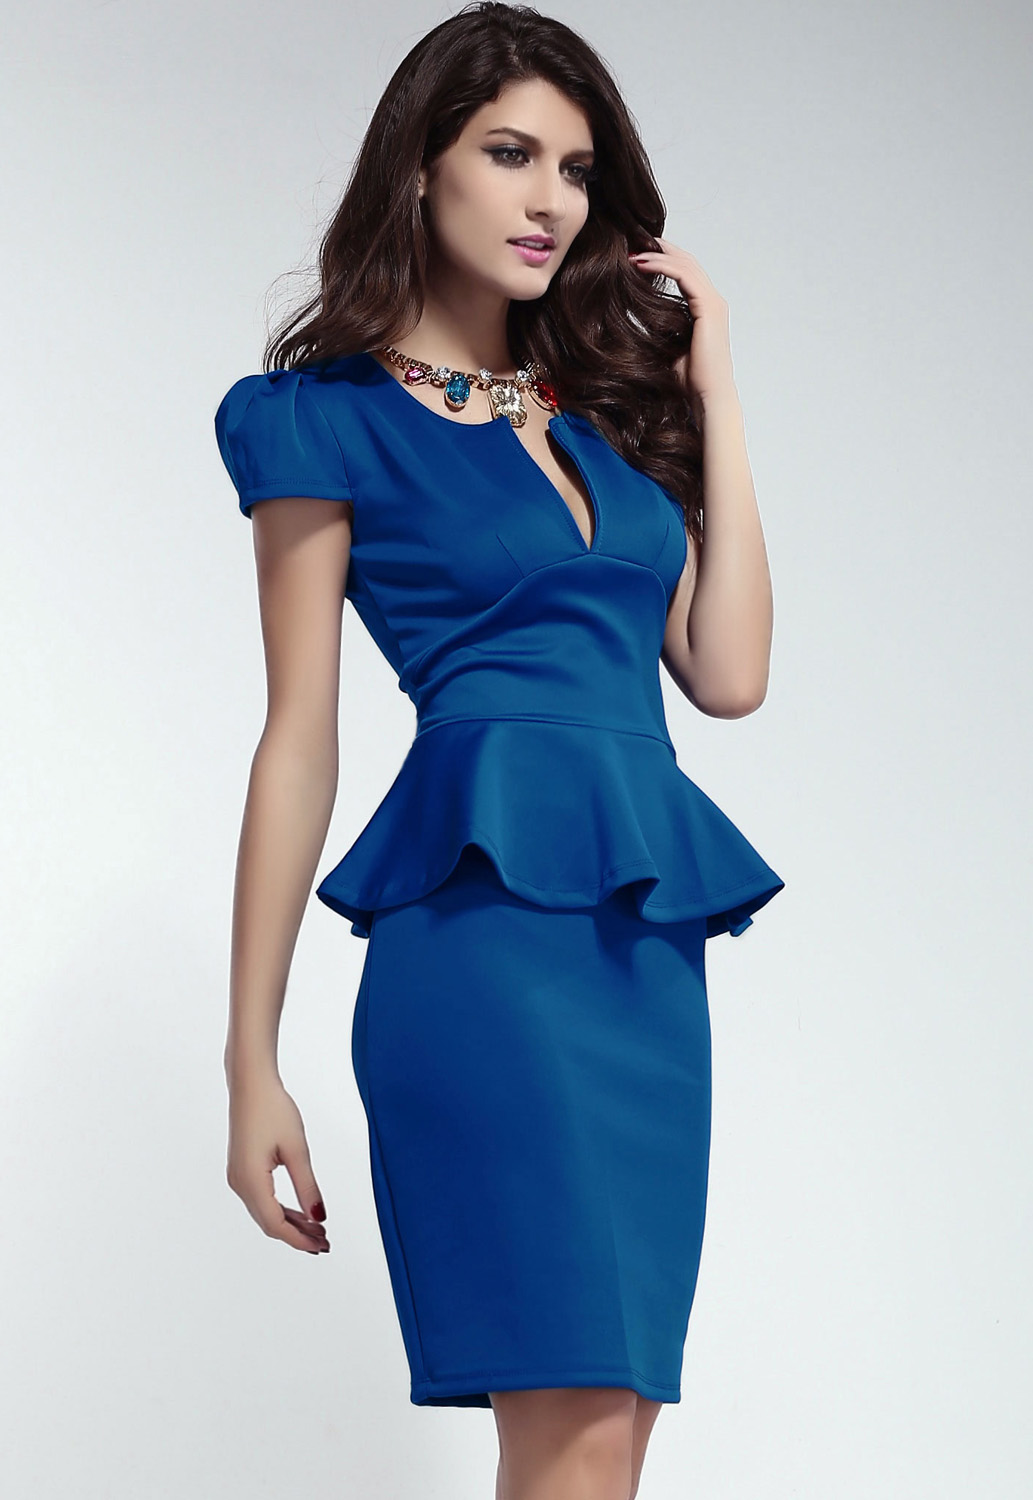 Blue U-neck OL Peplum Dress